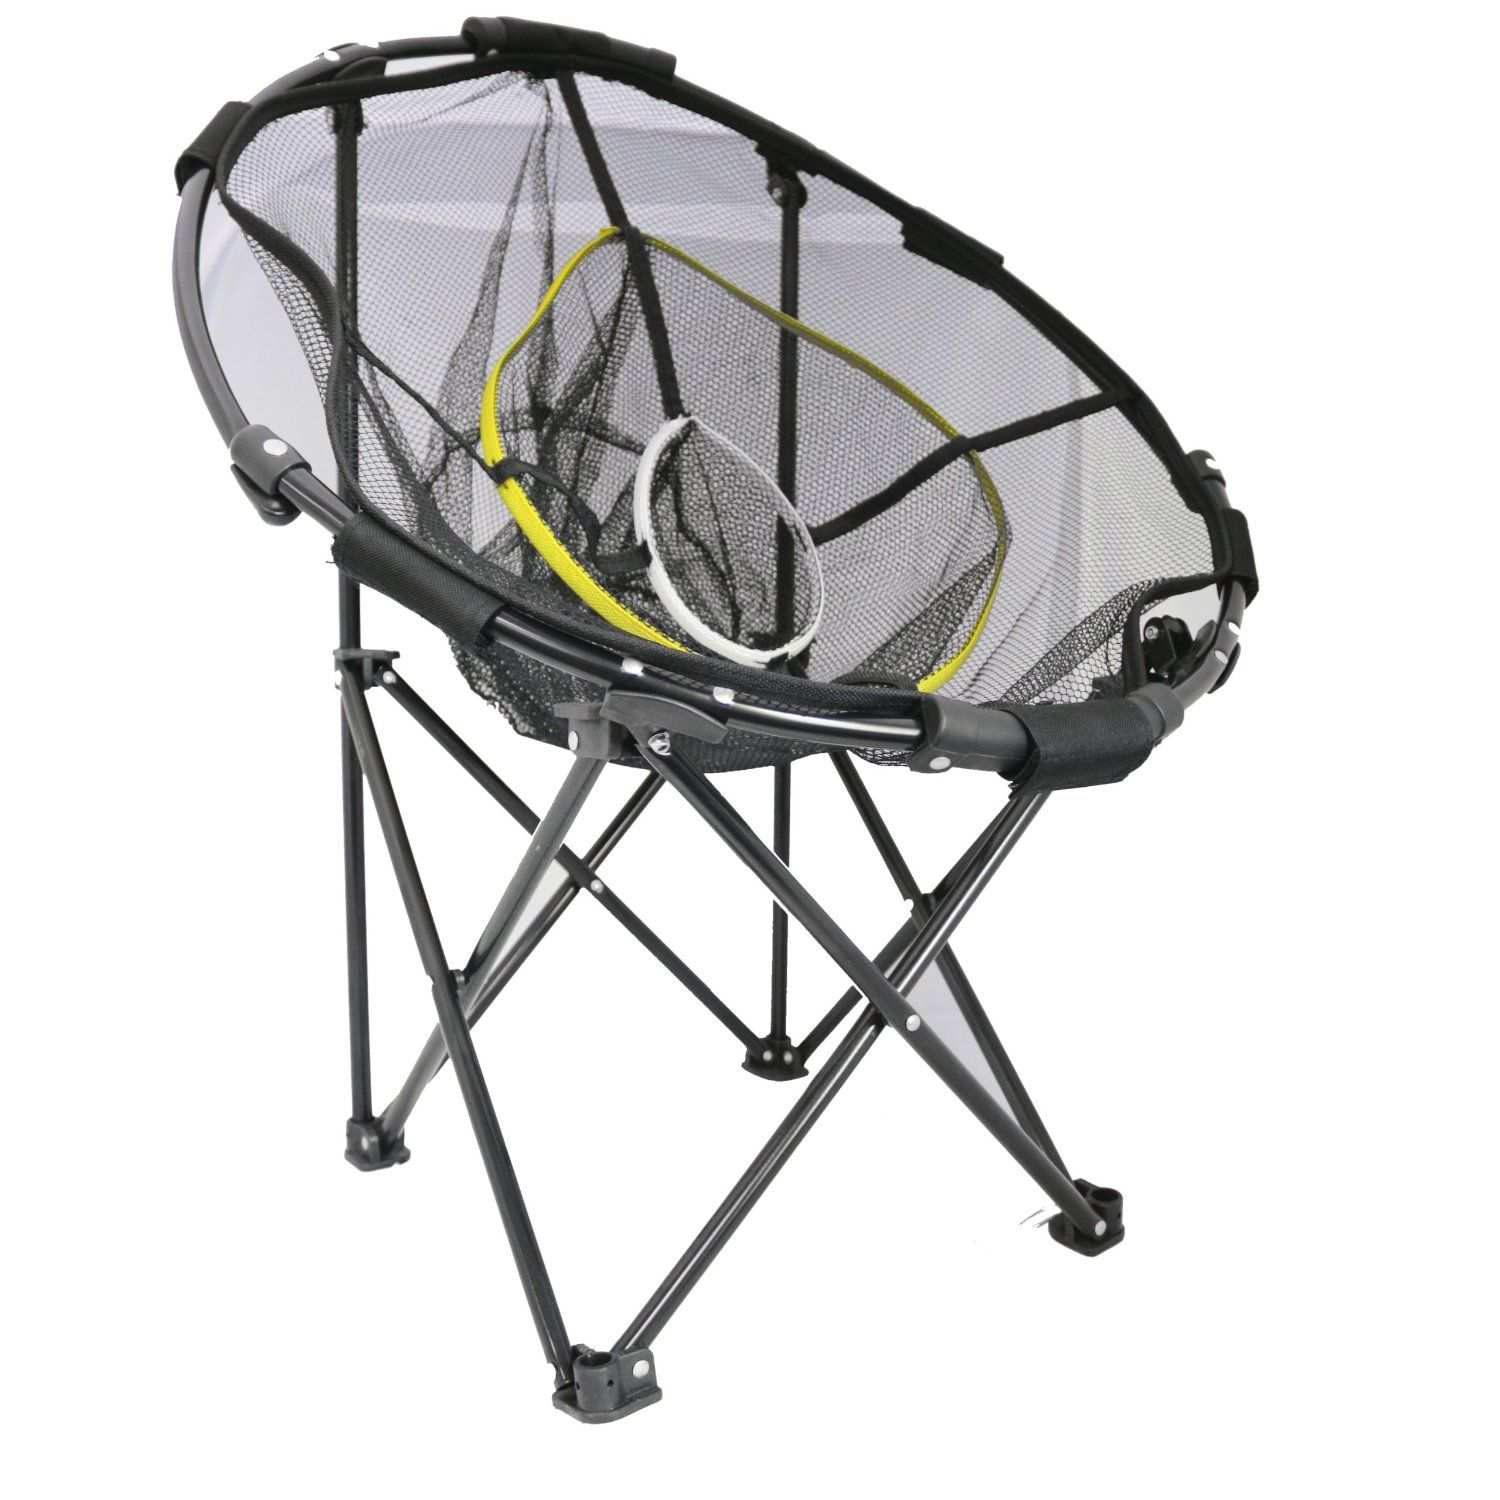 ideak for the backyard this golf chipping net by club champ sets